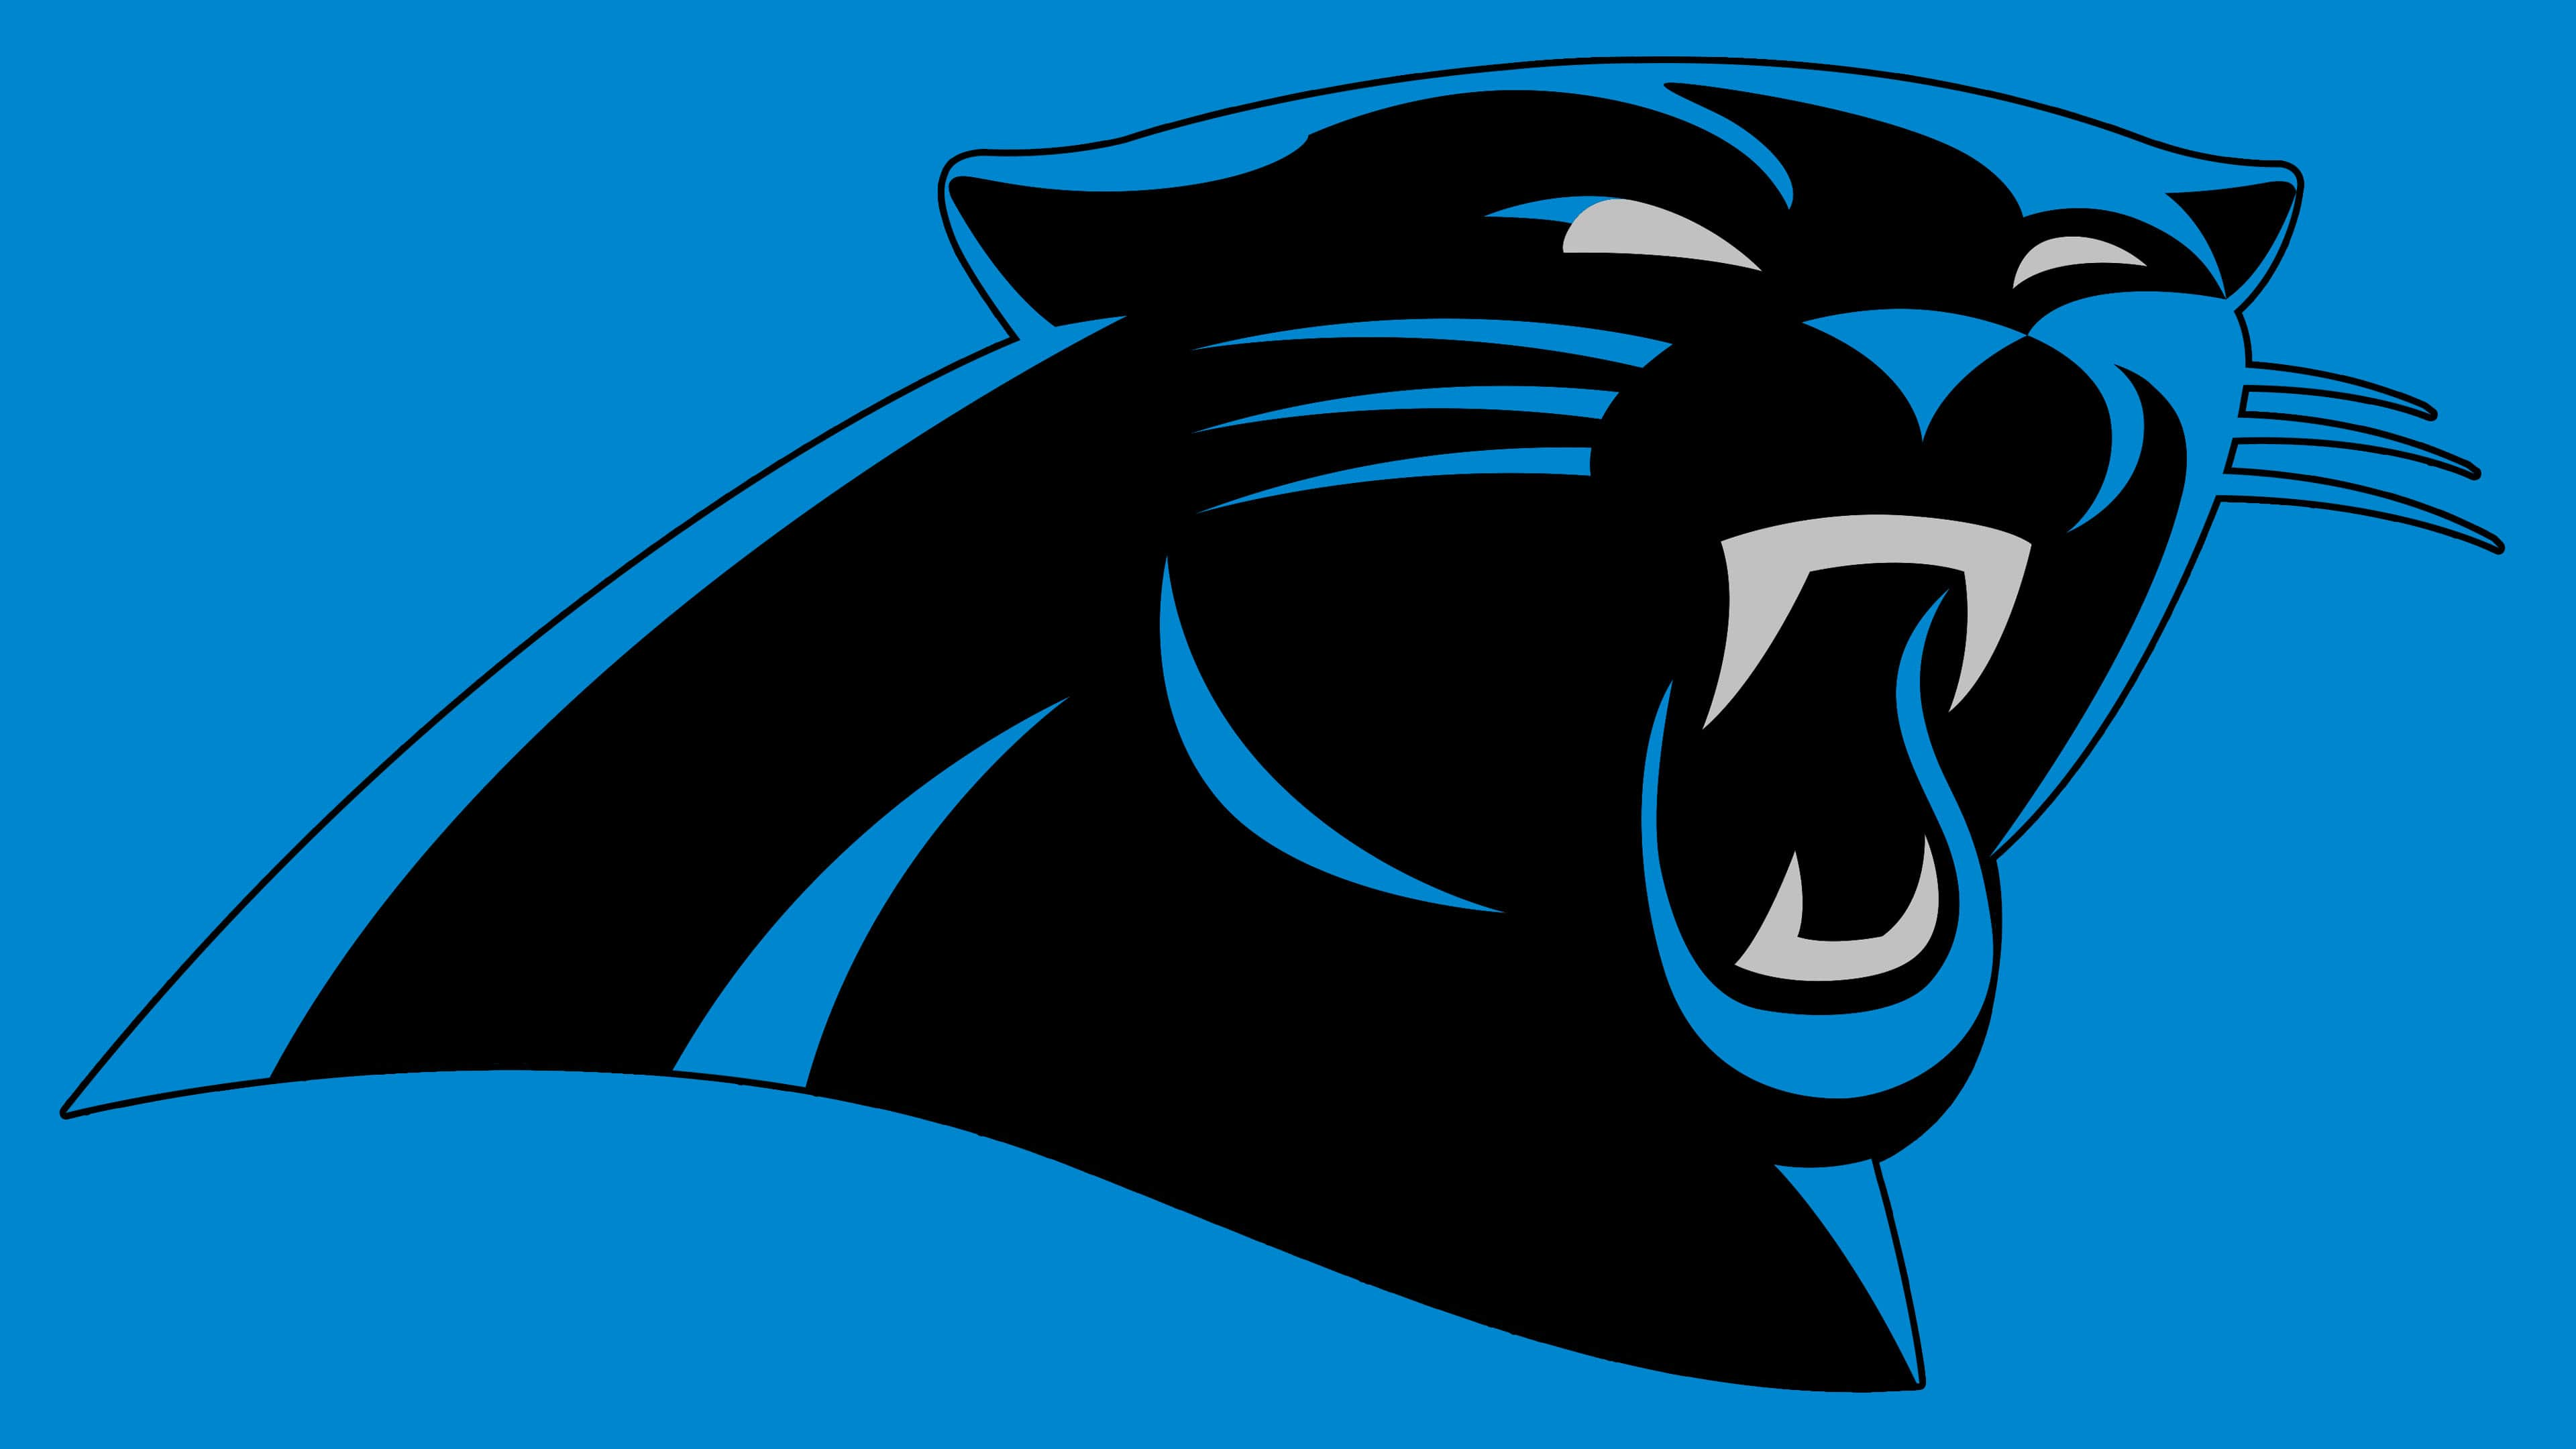 Carolina Panthers Logos.